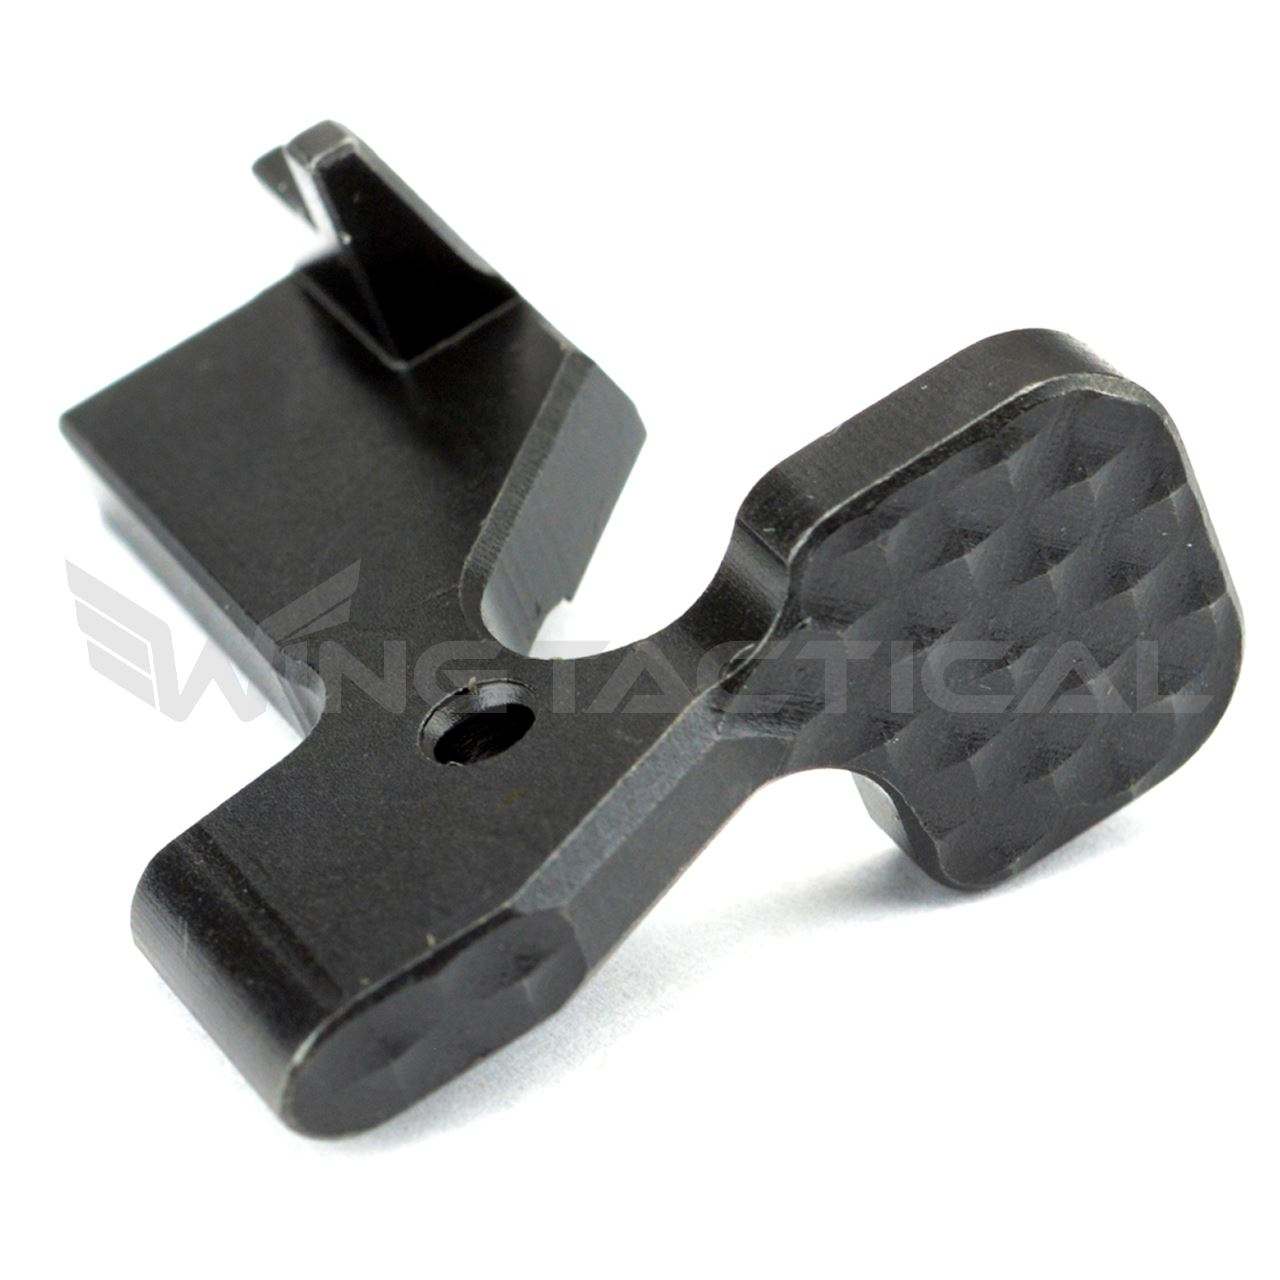 Seekins Precision AR-15 Enhanced Bolt Catch